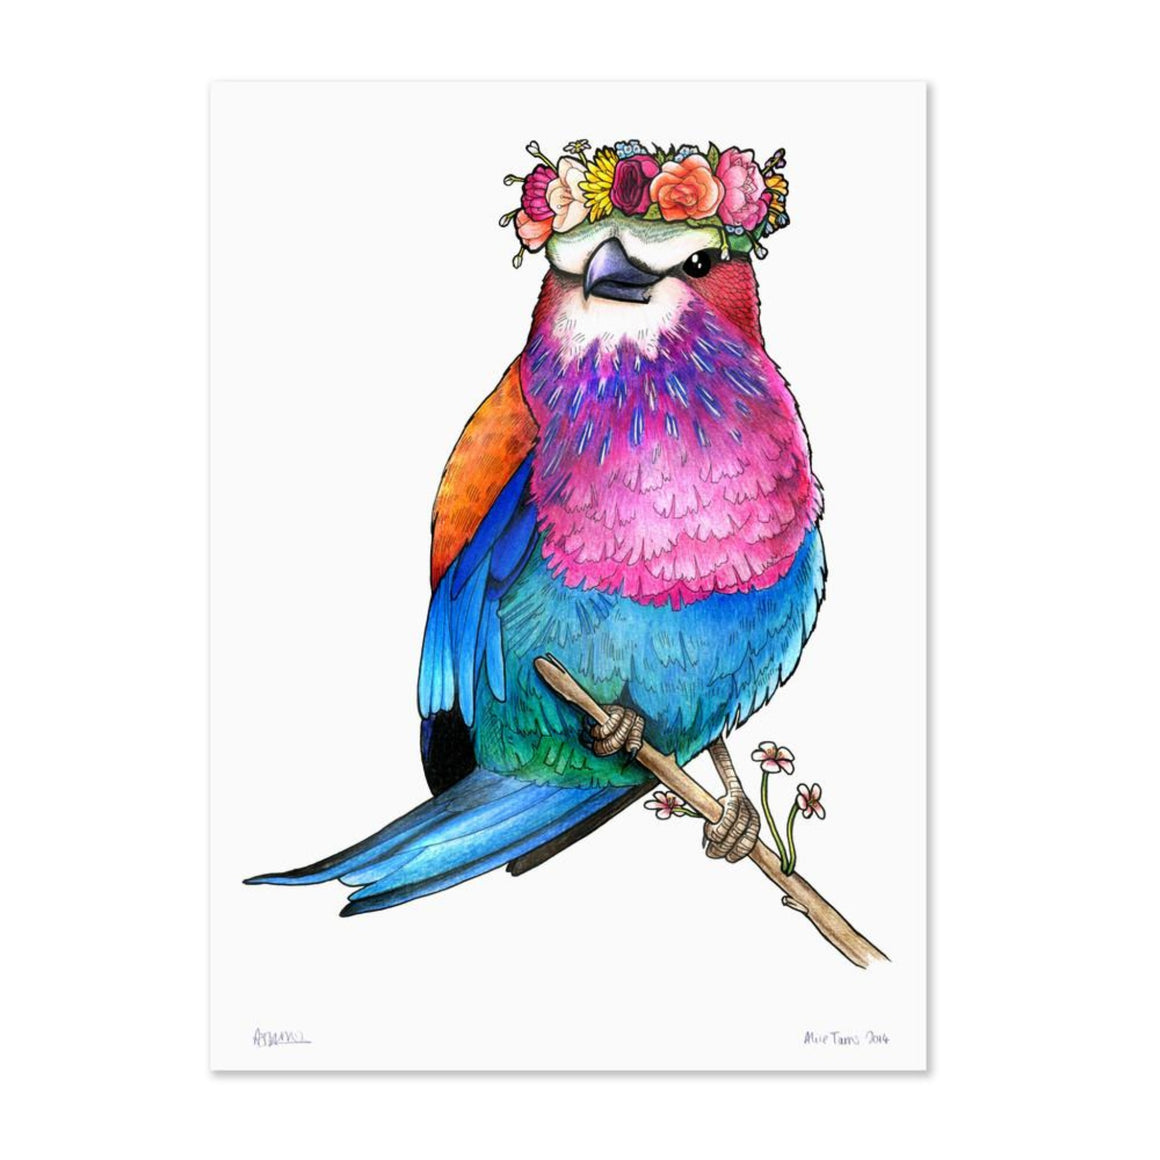 Birds In Hats Print - Lilac Breasted Roller in a Floral Head Crown A4